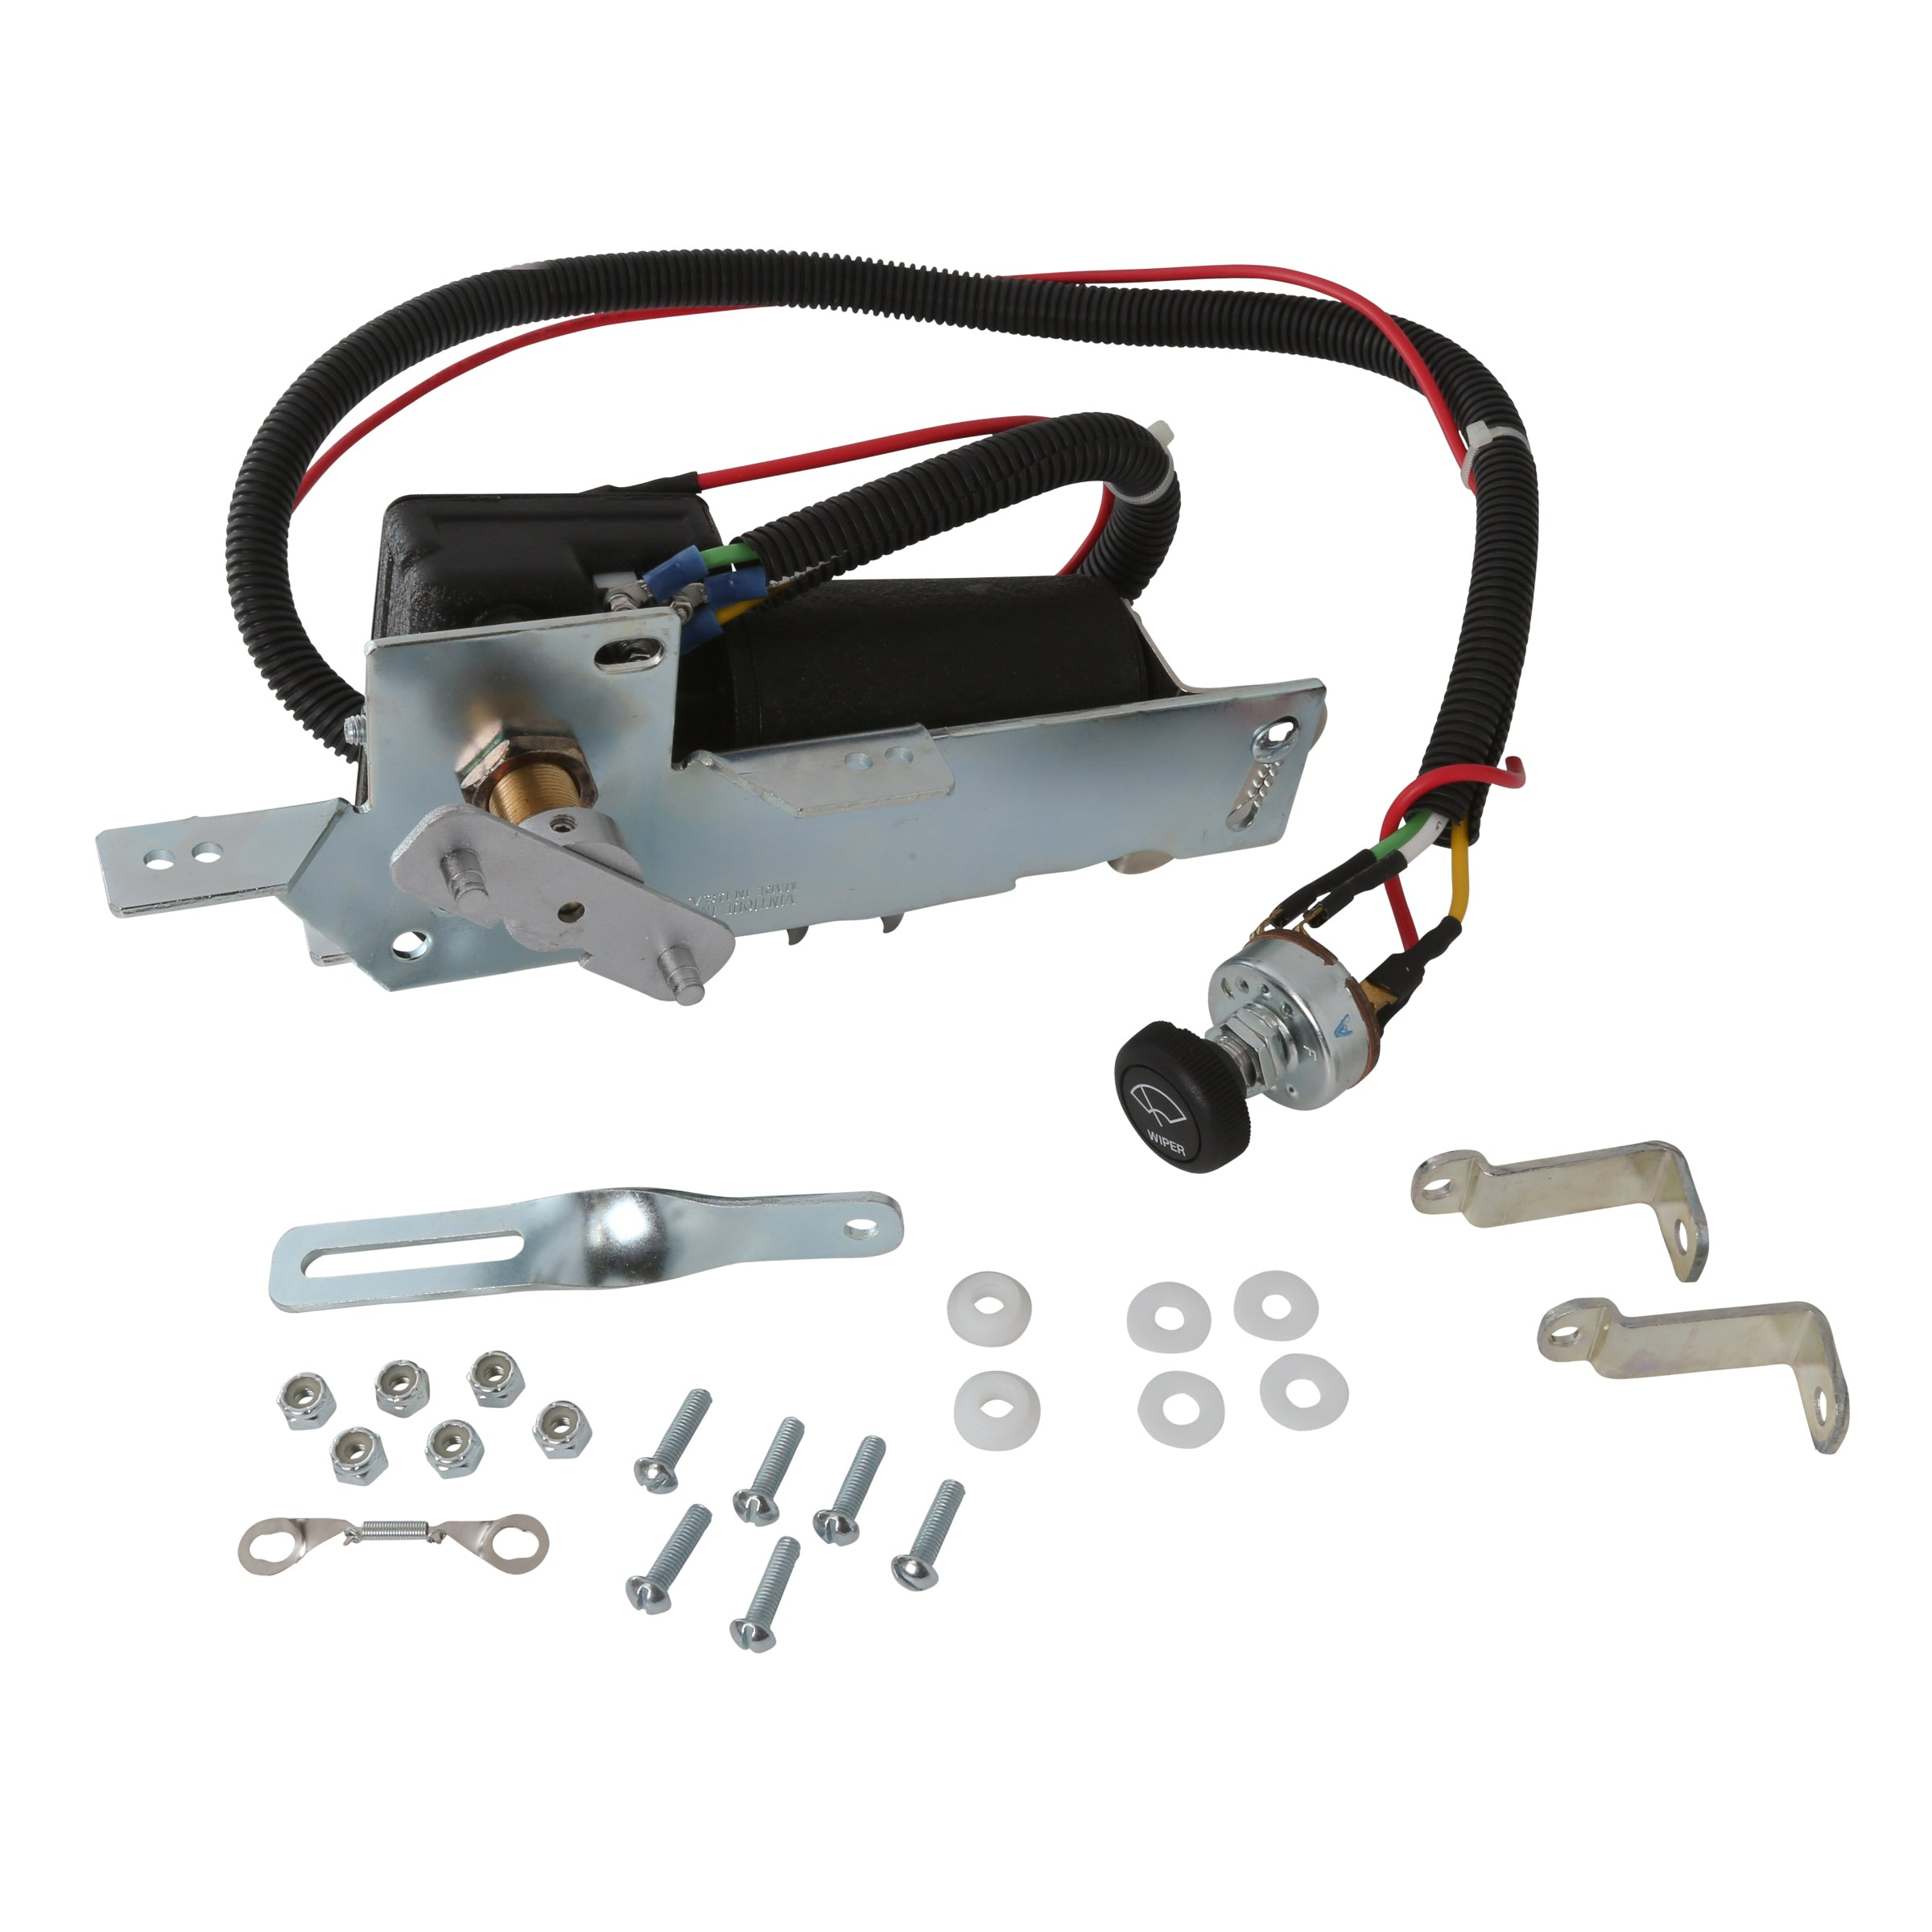 Wiper Motor Conversion Kit (6 Volt) • 1946-48 Ford Passenger